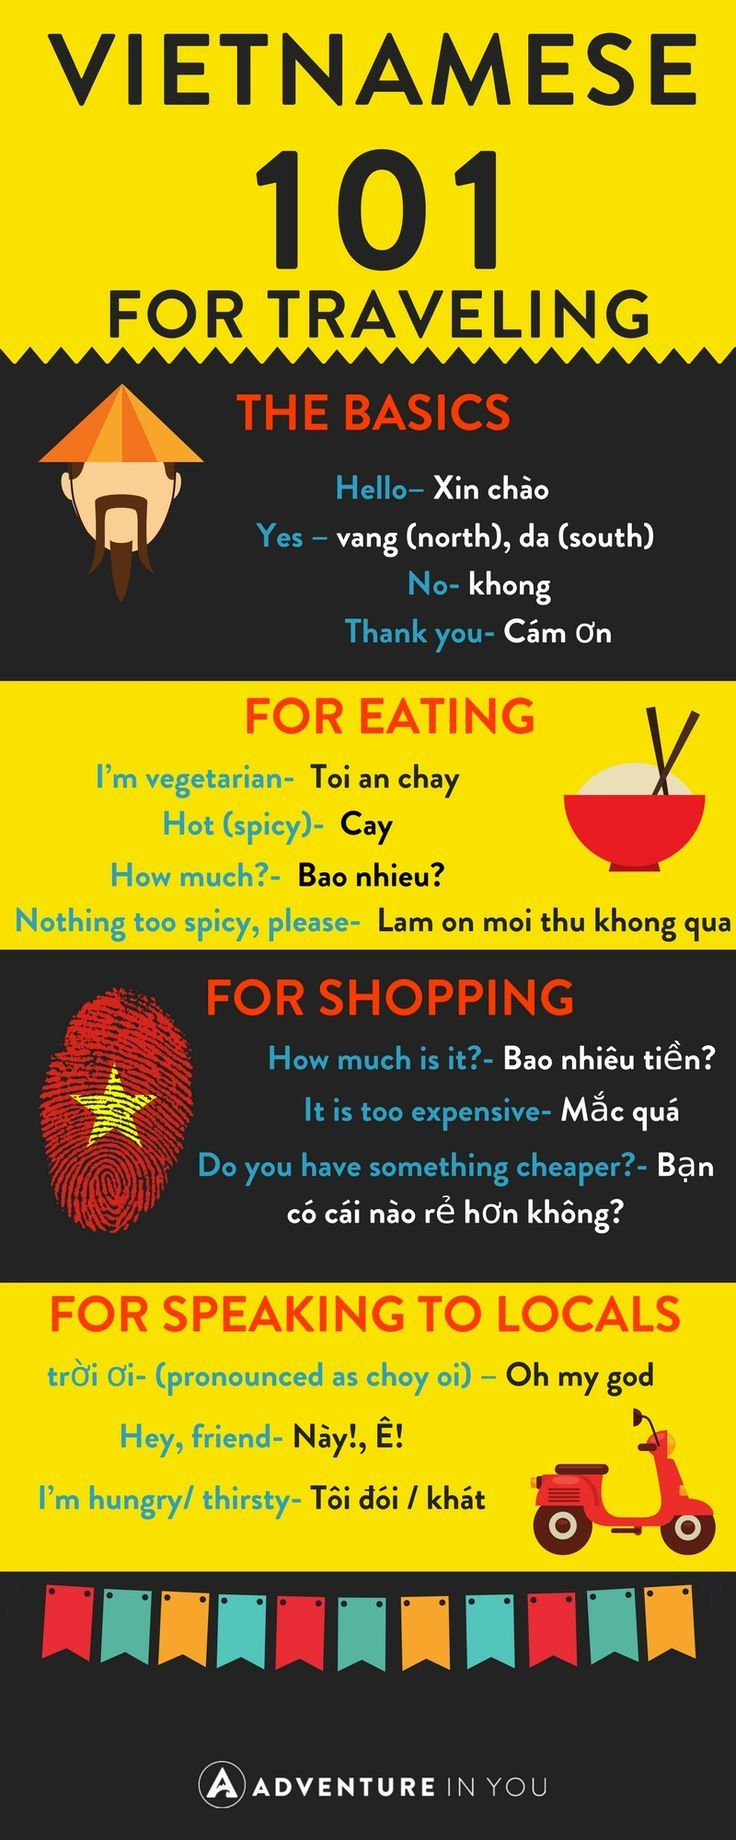 Vietnam Travel | Heading to Vietnam? Check out our guide on basic Vietnamese words to help you travel Vietnam.